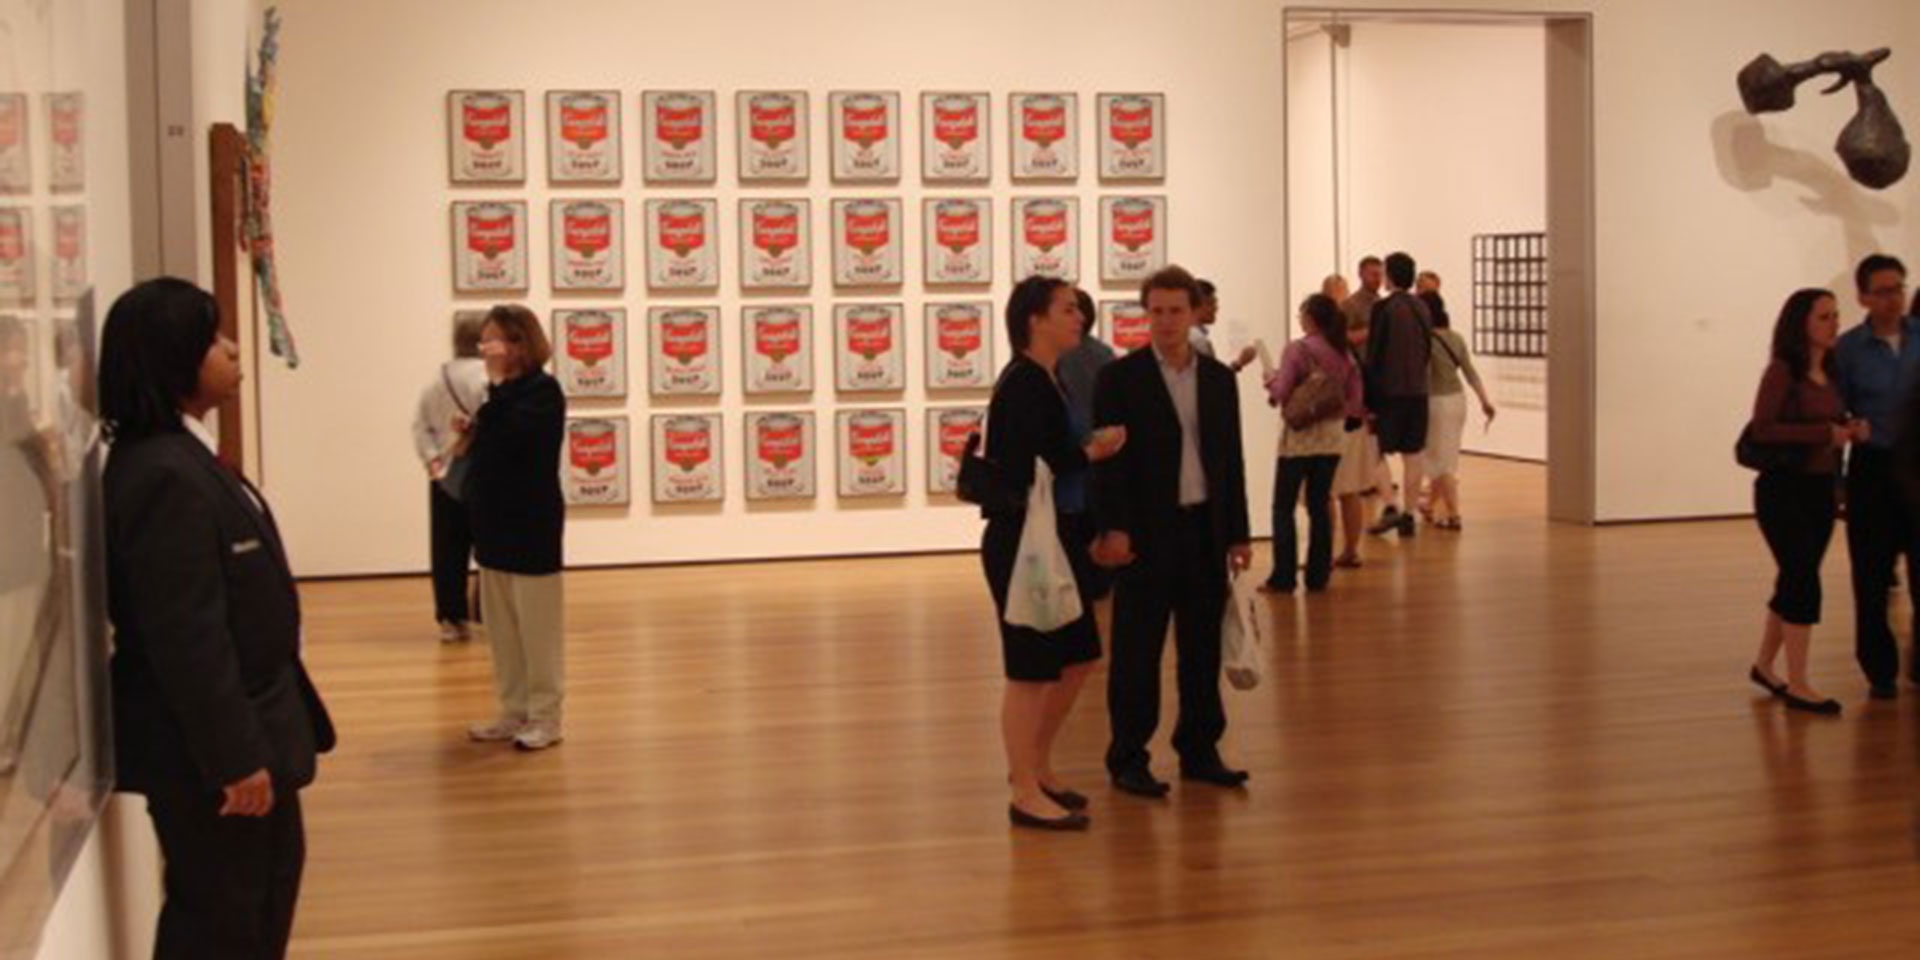 andy wharol campbell soup cans